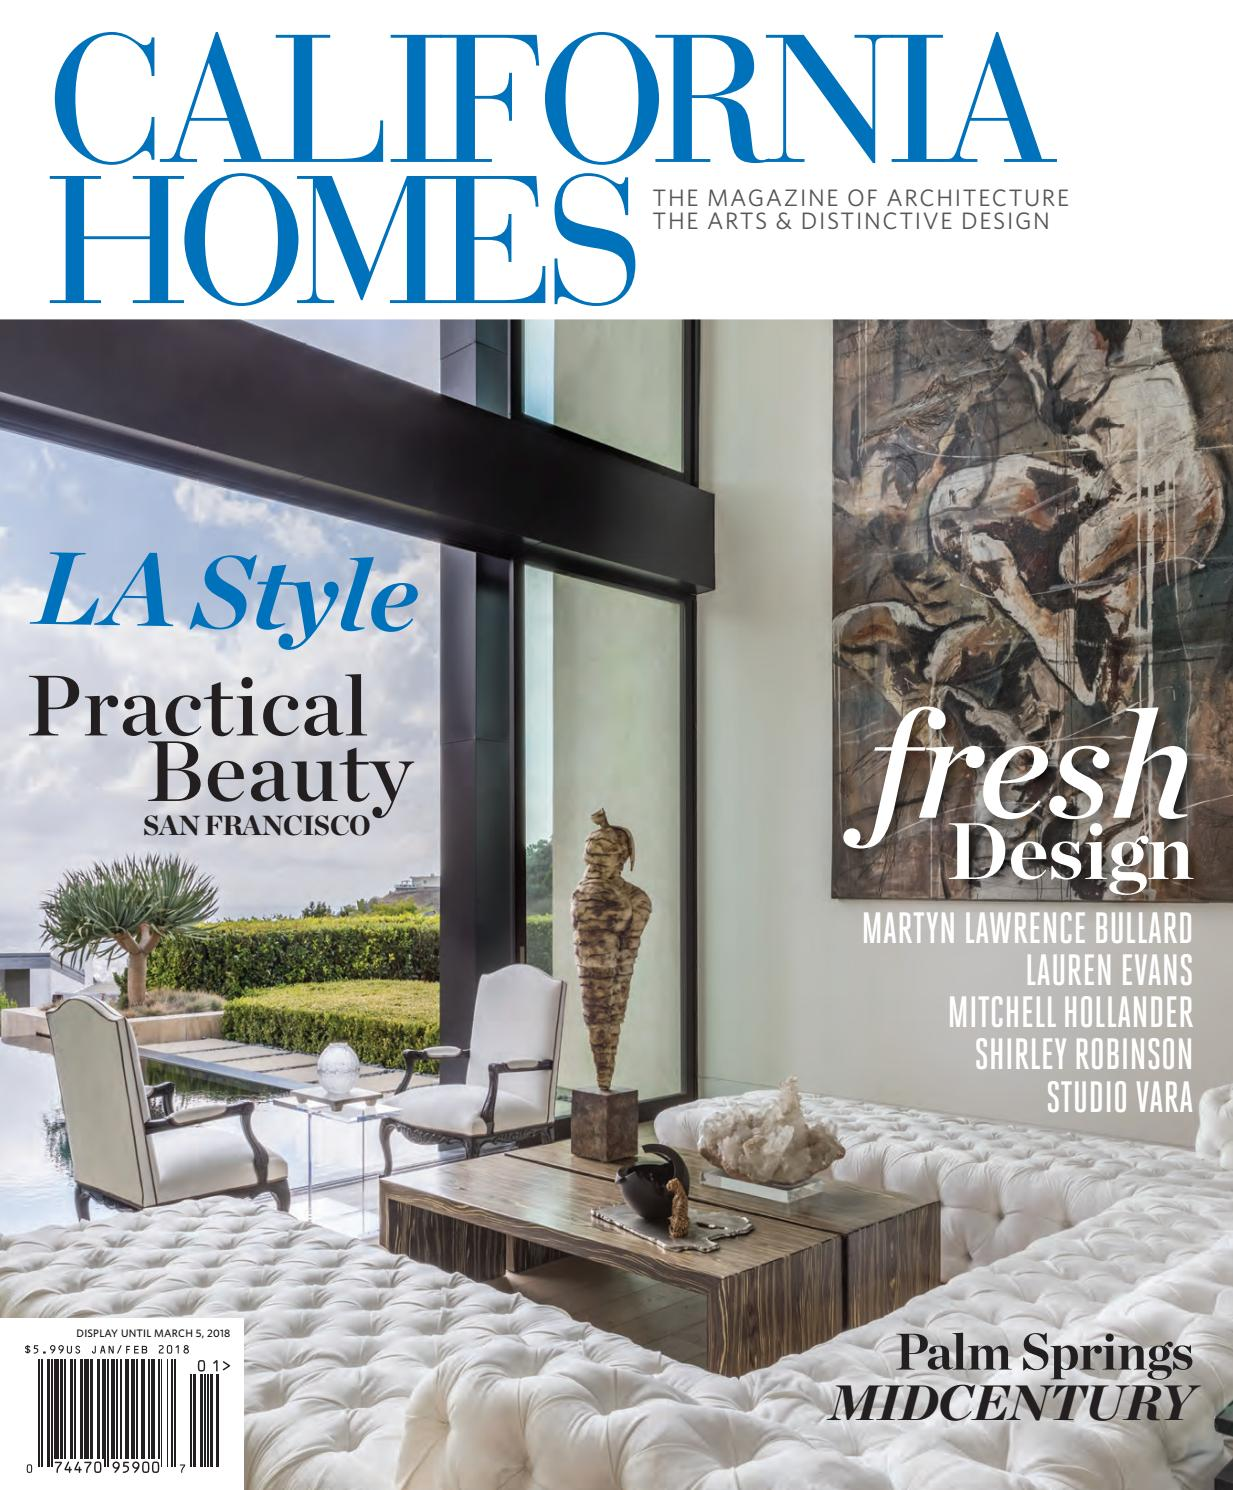 California Homes JanuaryFebruary 2018 by California